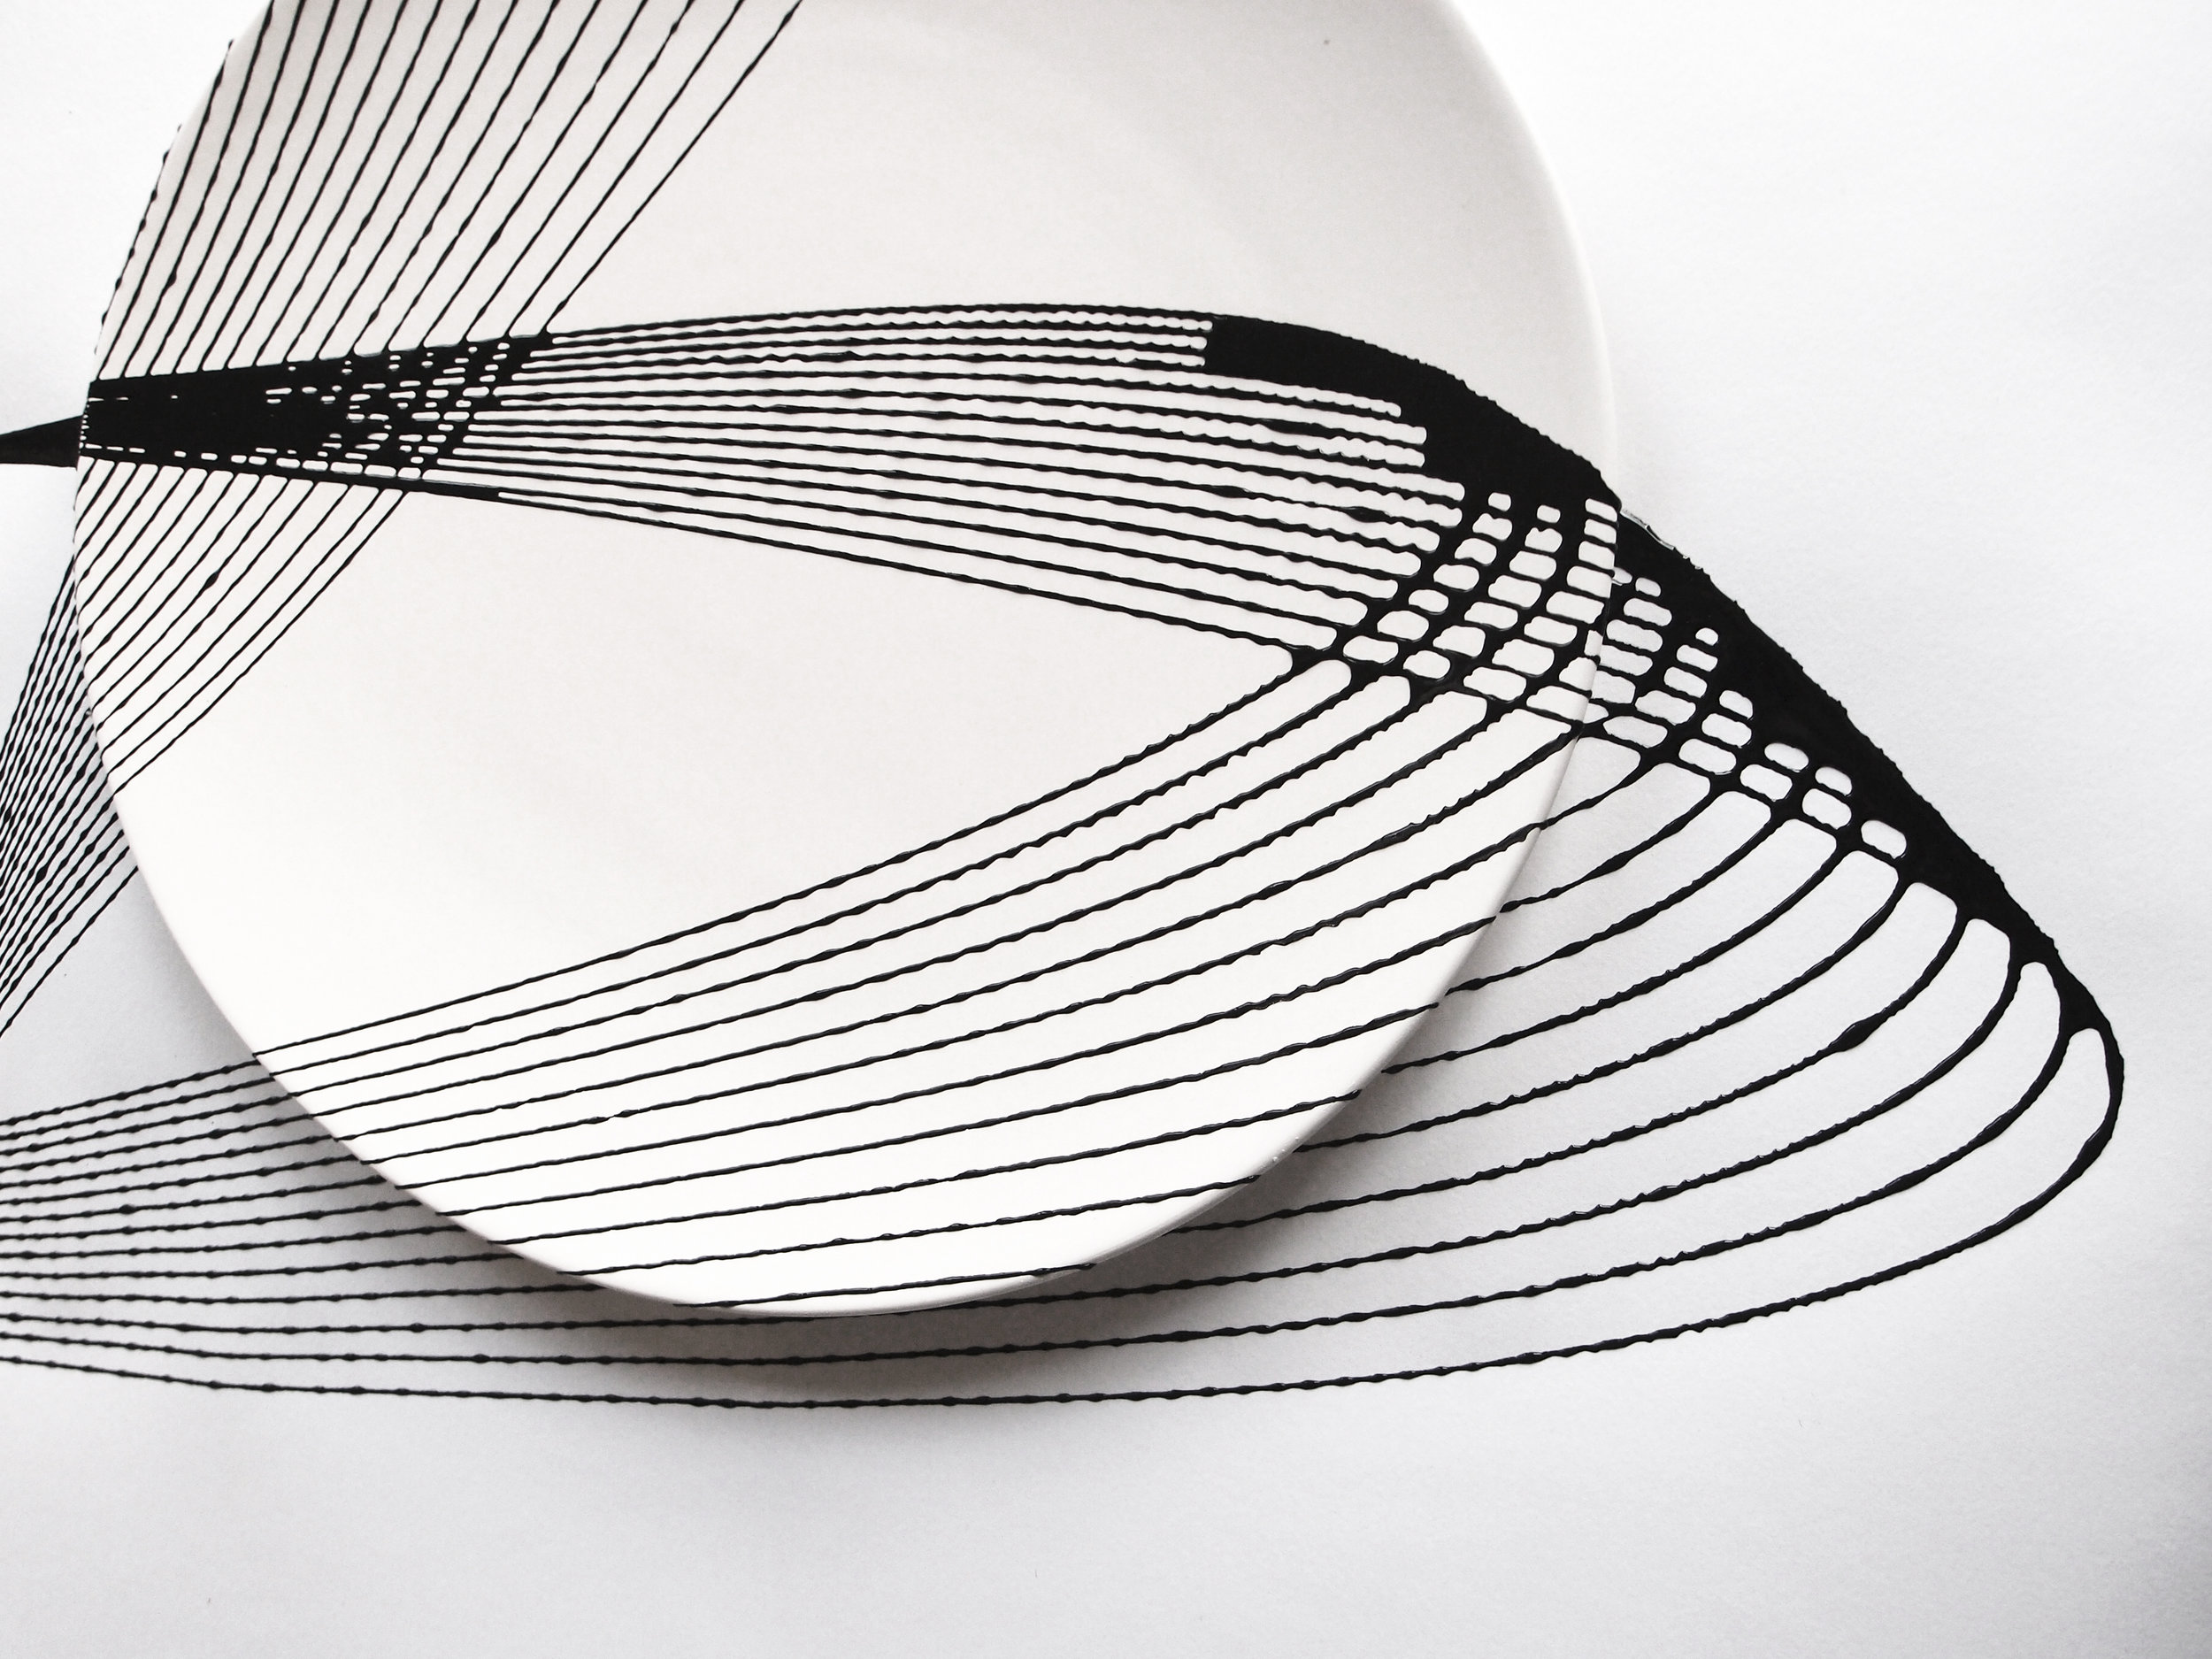 Oscillation plates-top view detail-David Derksen Design.jpg